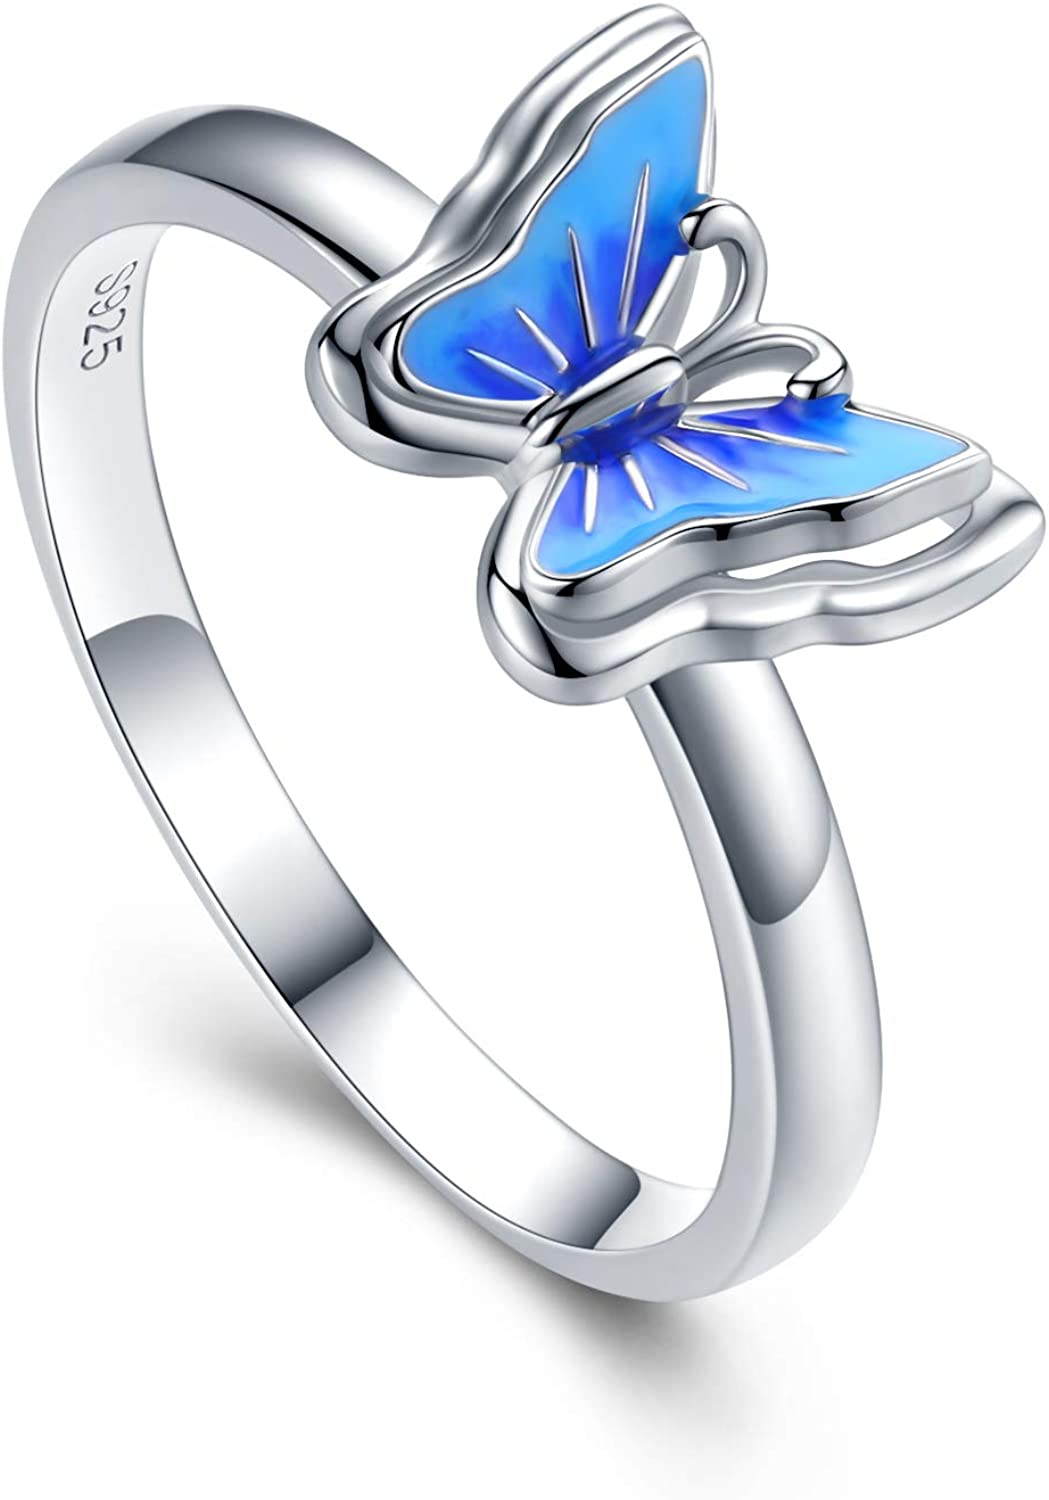 CHENGHONG Butterfly Ring 925 Sterling Silver Stereoscopic Nature Butterfly Jewelry for Mom Minimalist Animal Statement Promise Engagement Wedding Ring for Women,Sizes 7-9